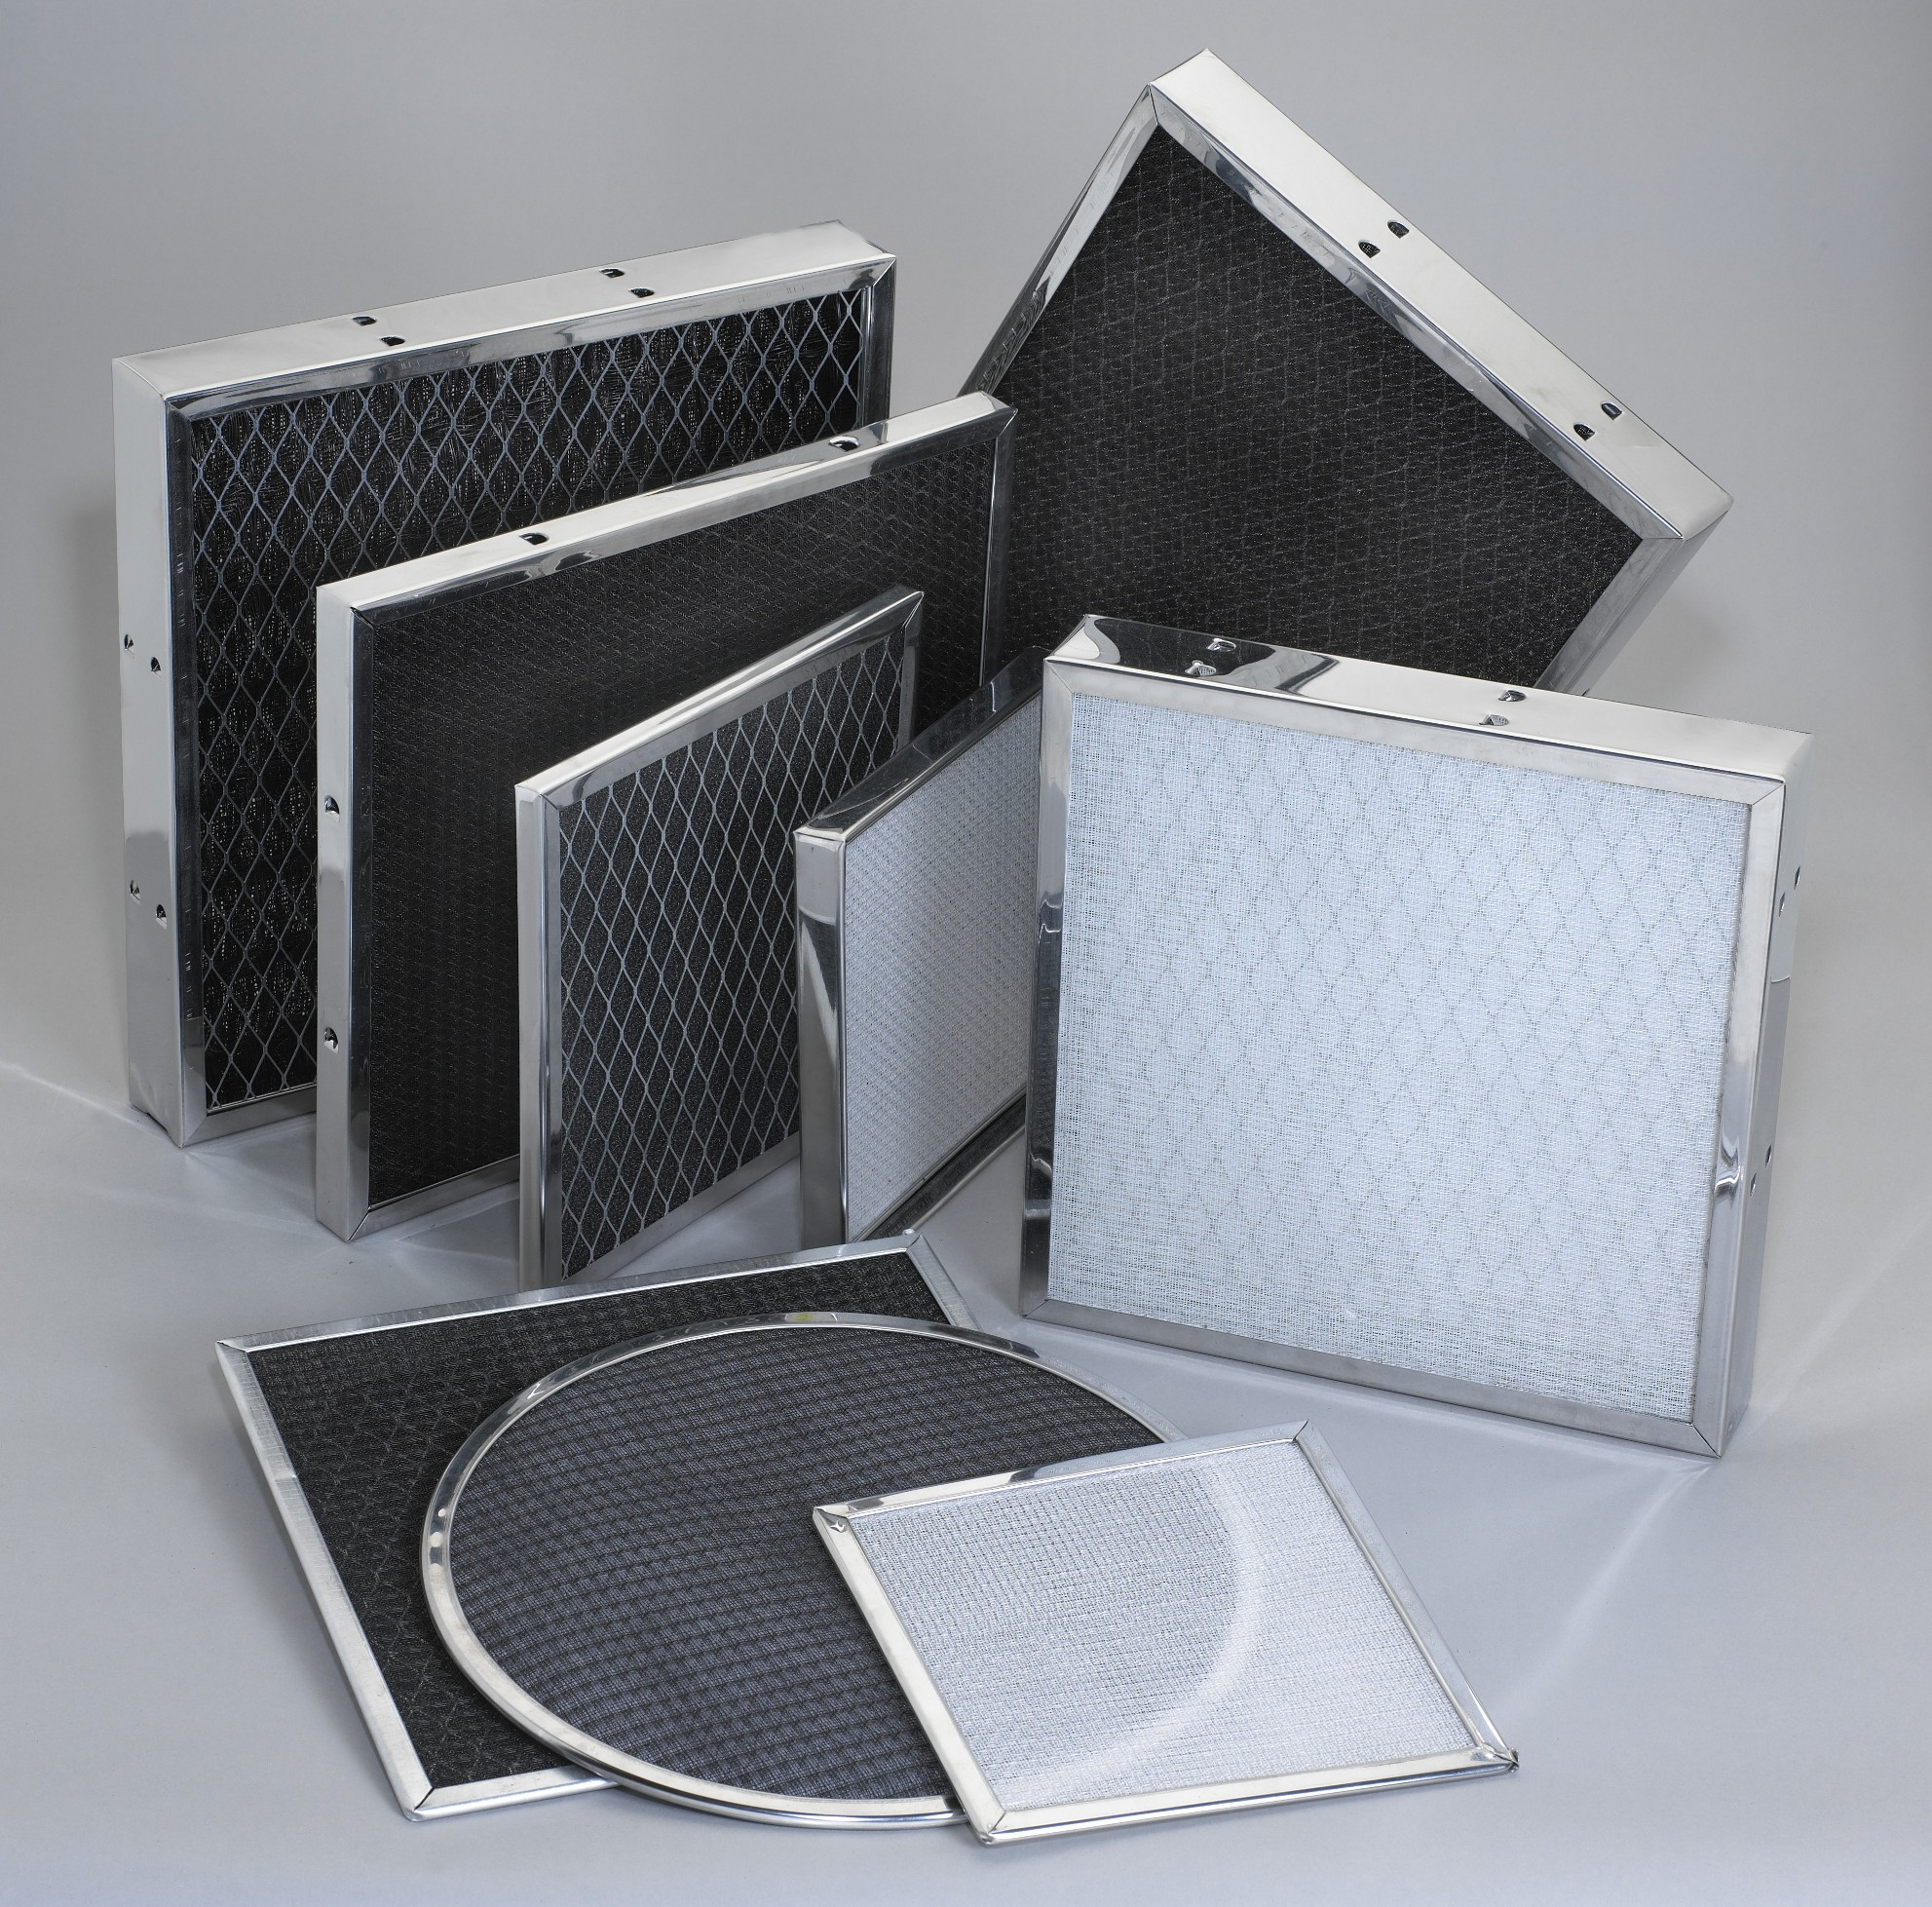 permatron-washable-air-filters